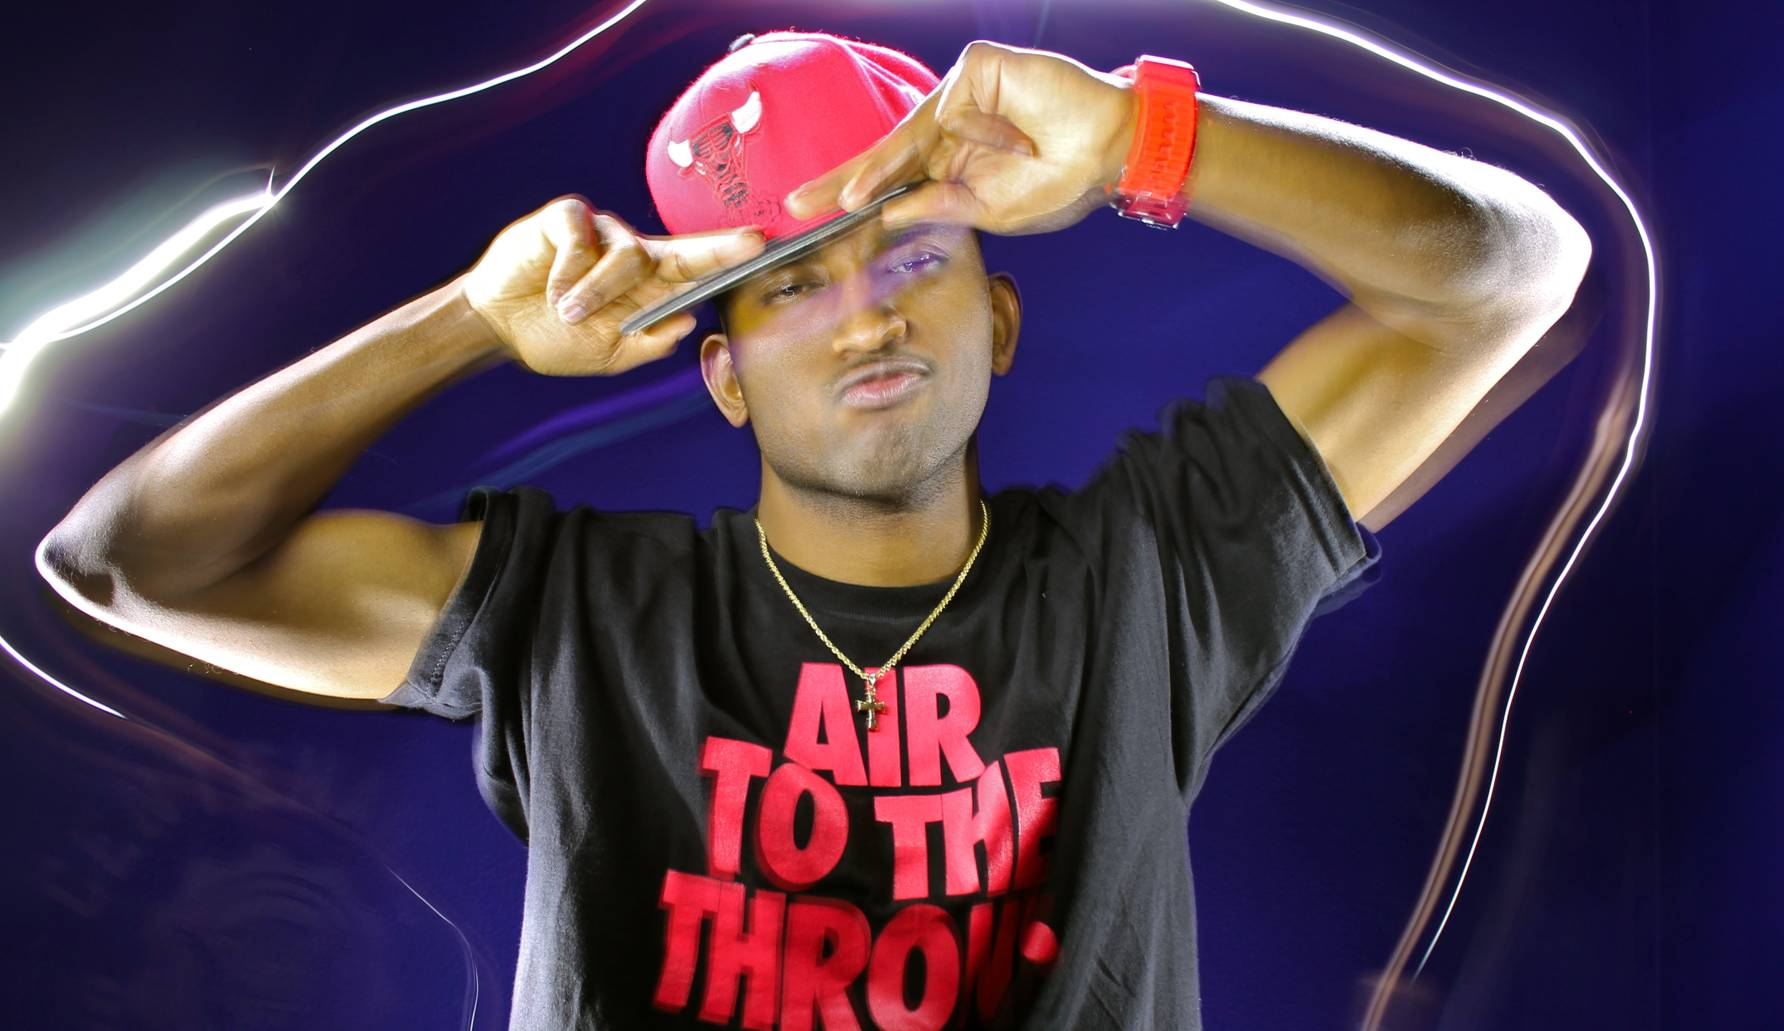 Swoozie